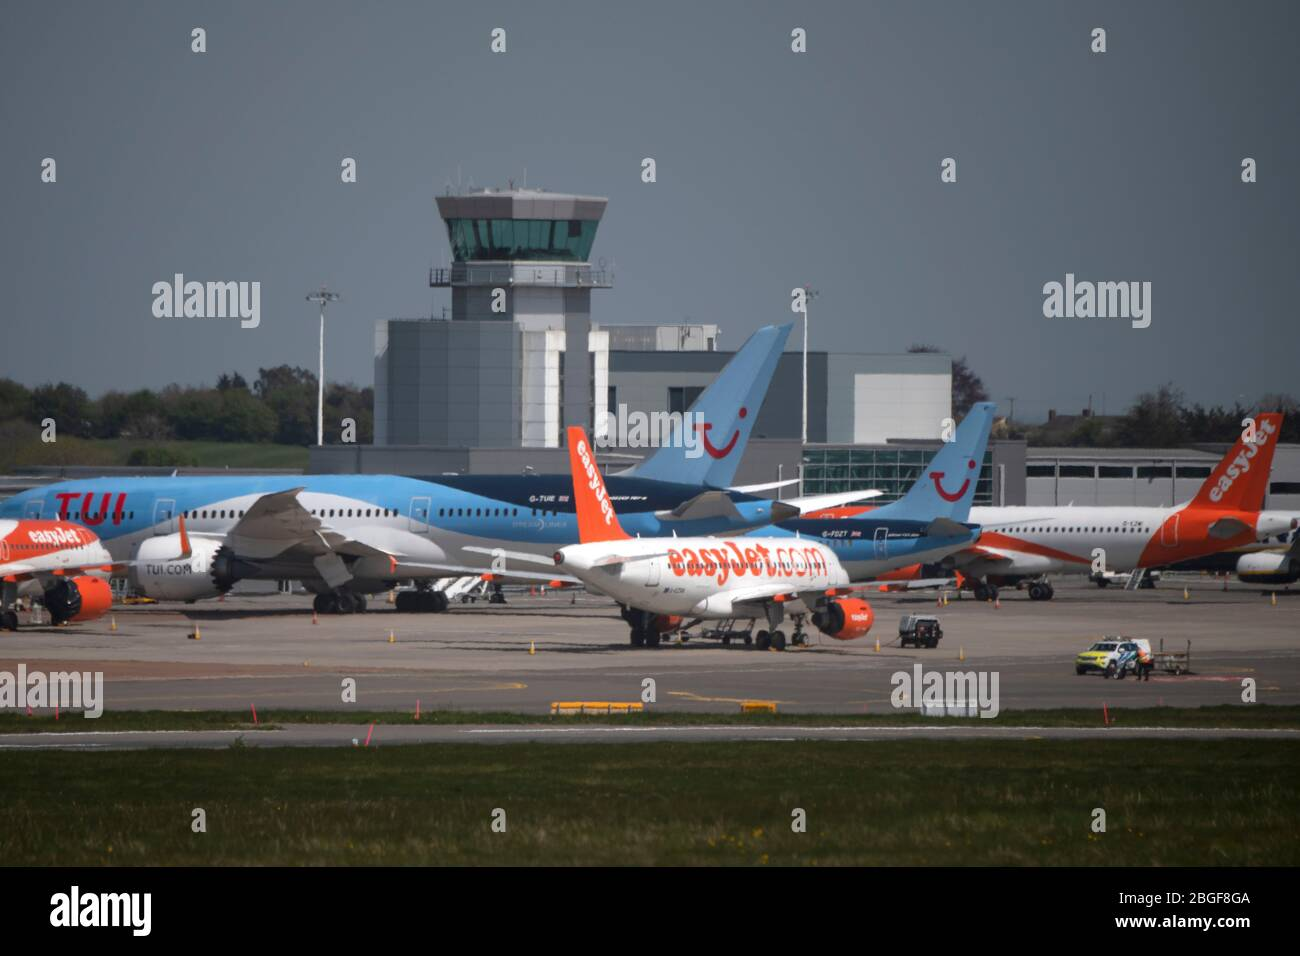 A380 Flyan Air International Airport Roblox Page 2 Coronavirus Airport High Resolution Stock Photography And Images Alamy